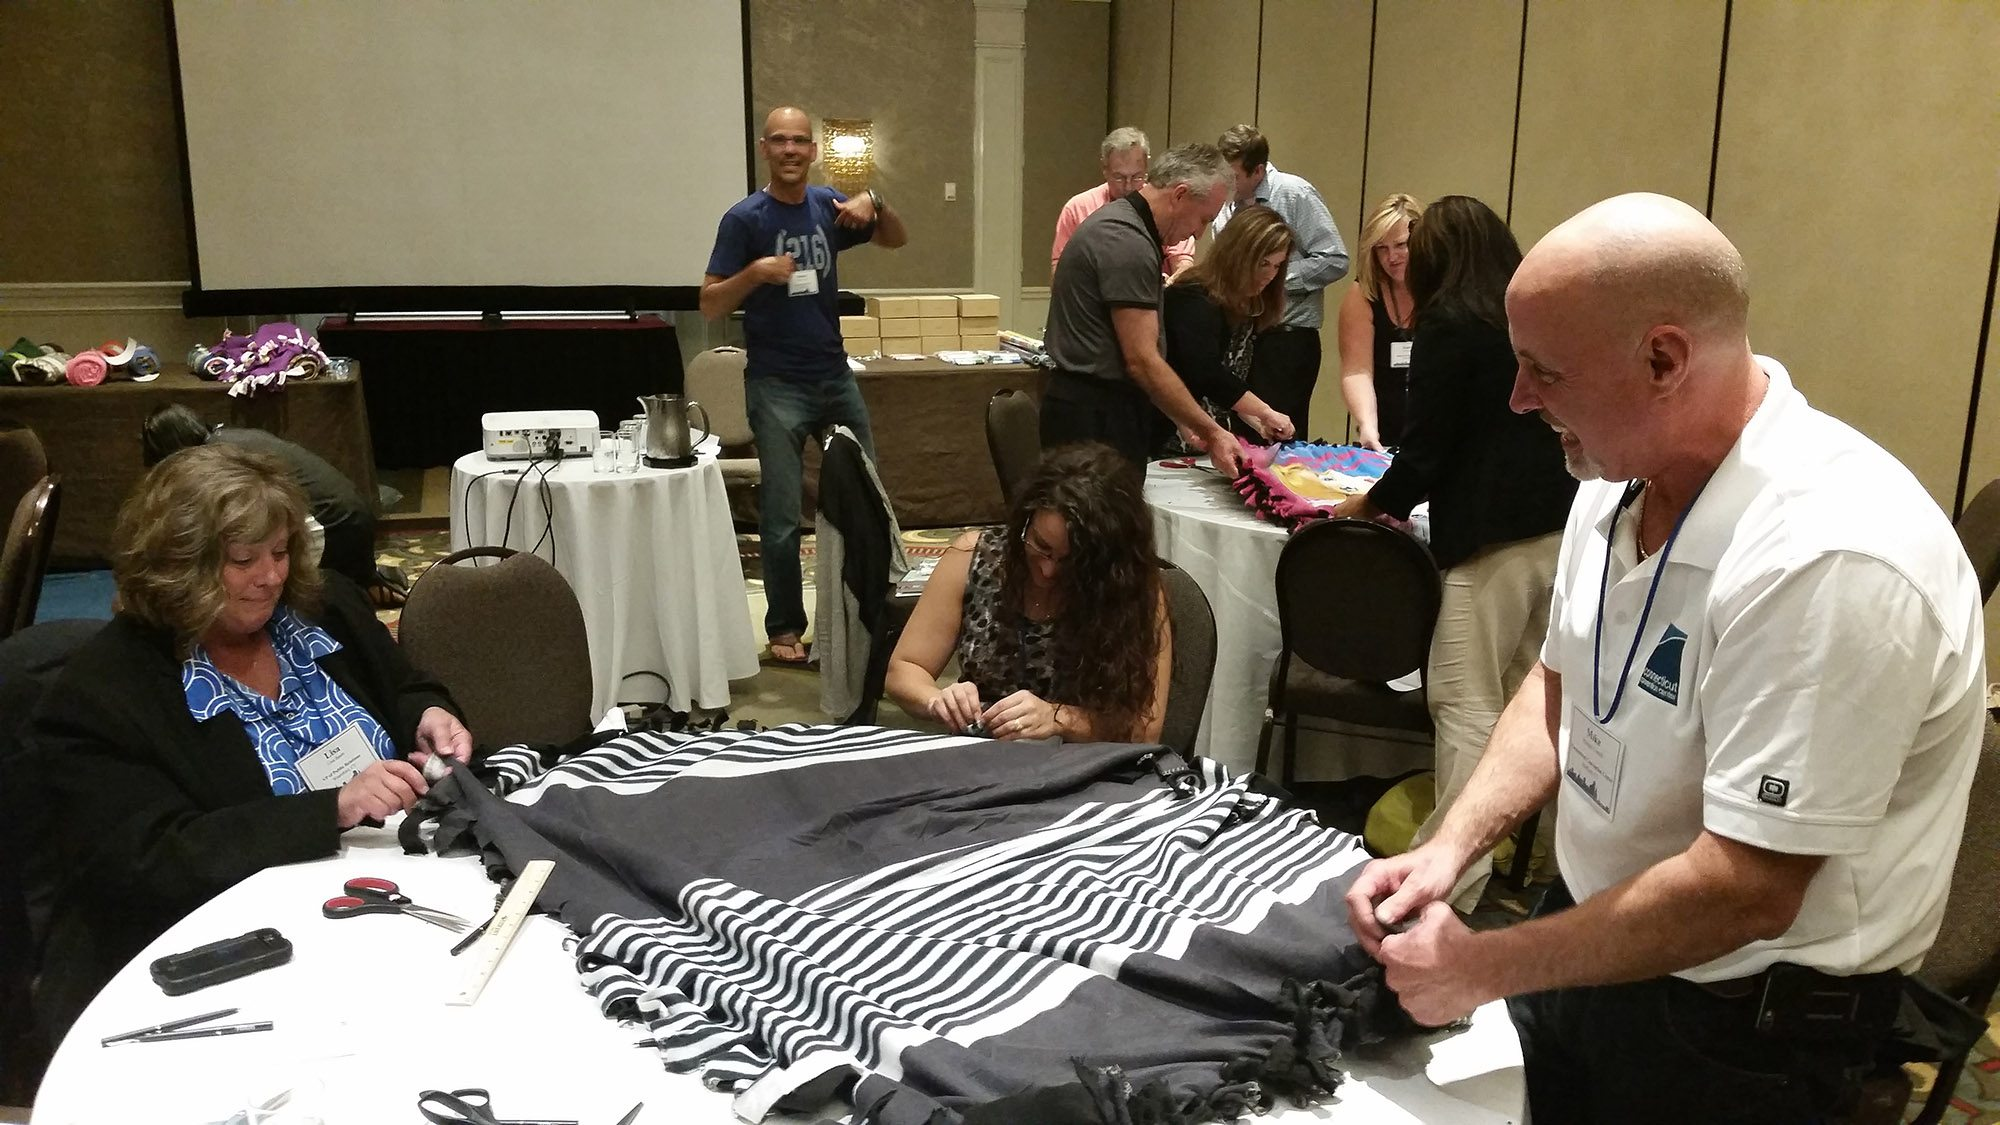 Teammates crafting their blanket on a table in a hotel conference room